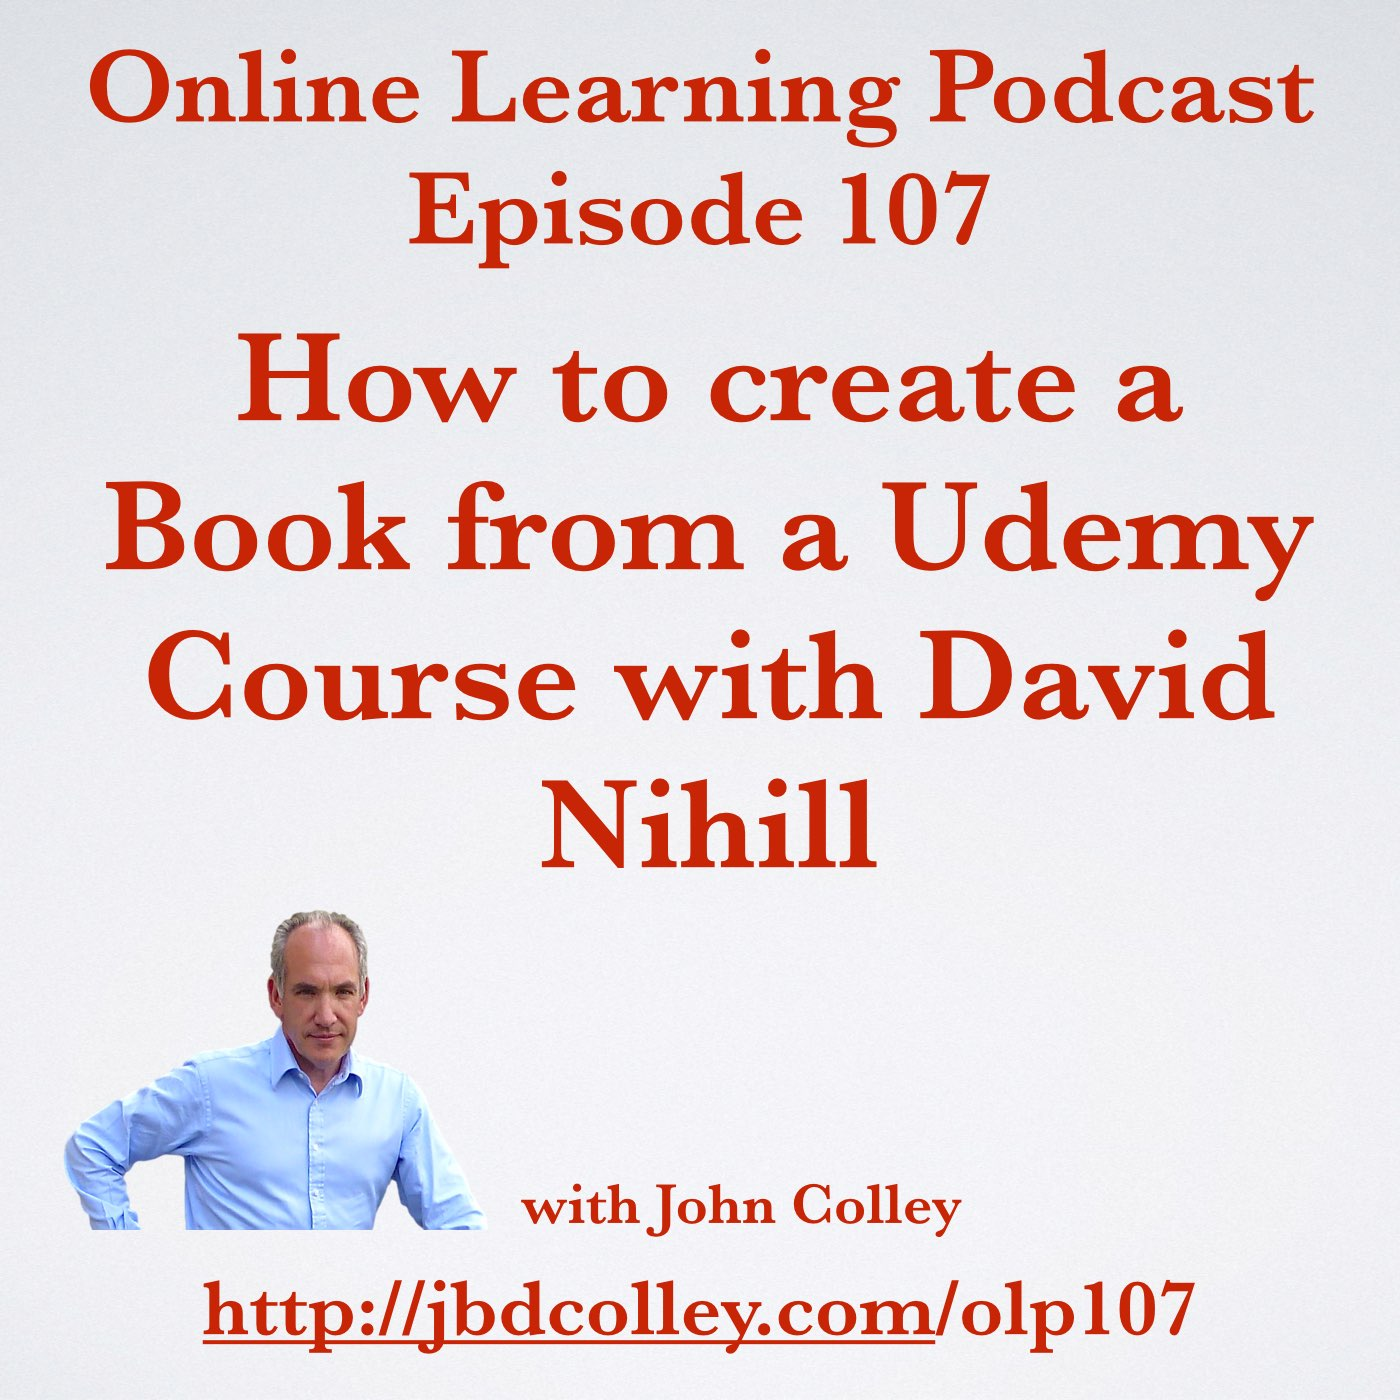 Online Learning Podcast Episode 107 How to create a Book from a Udemy Course with David Nihill